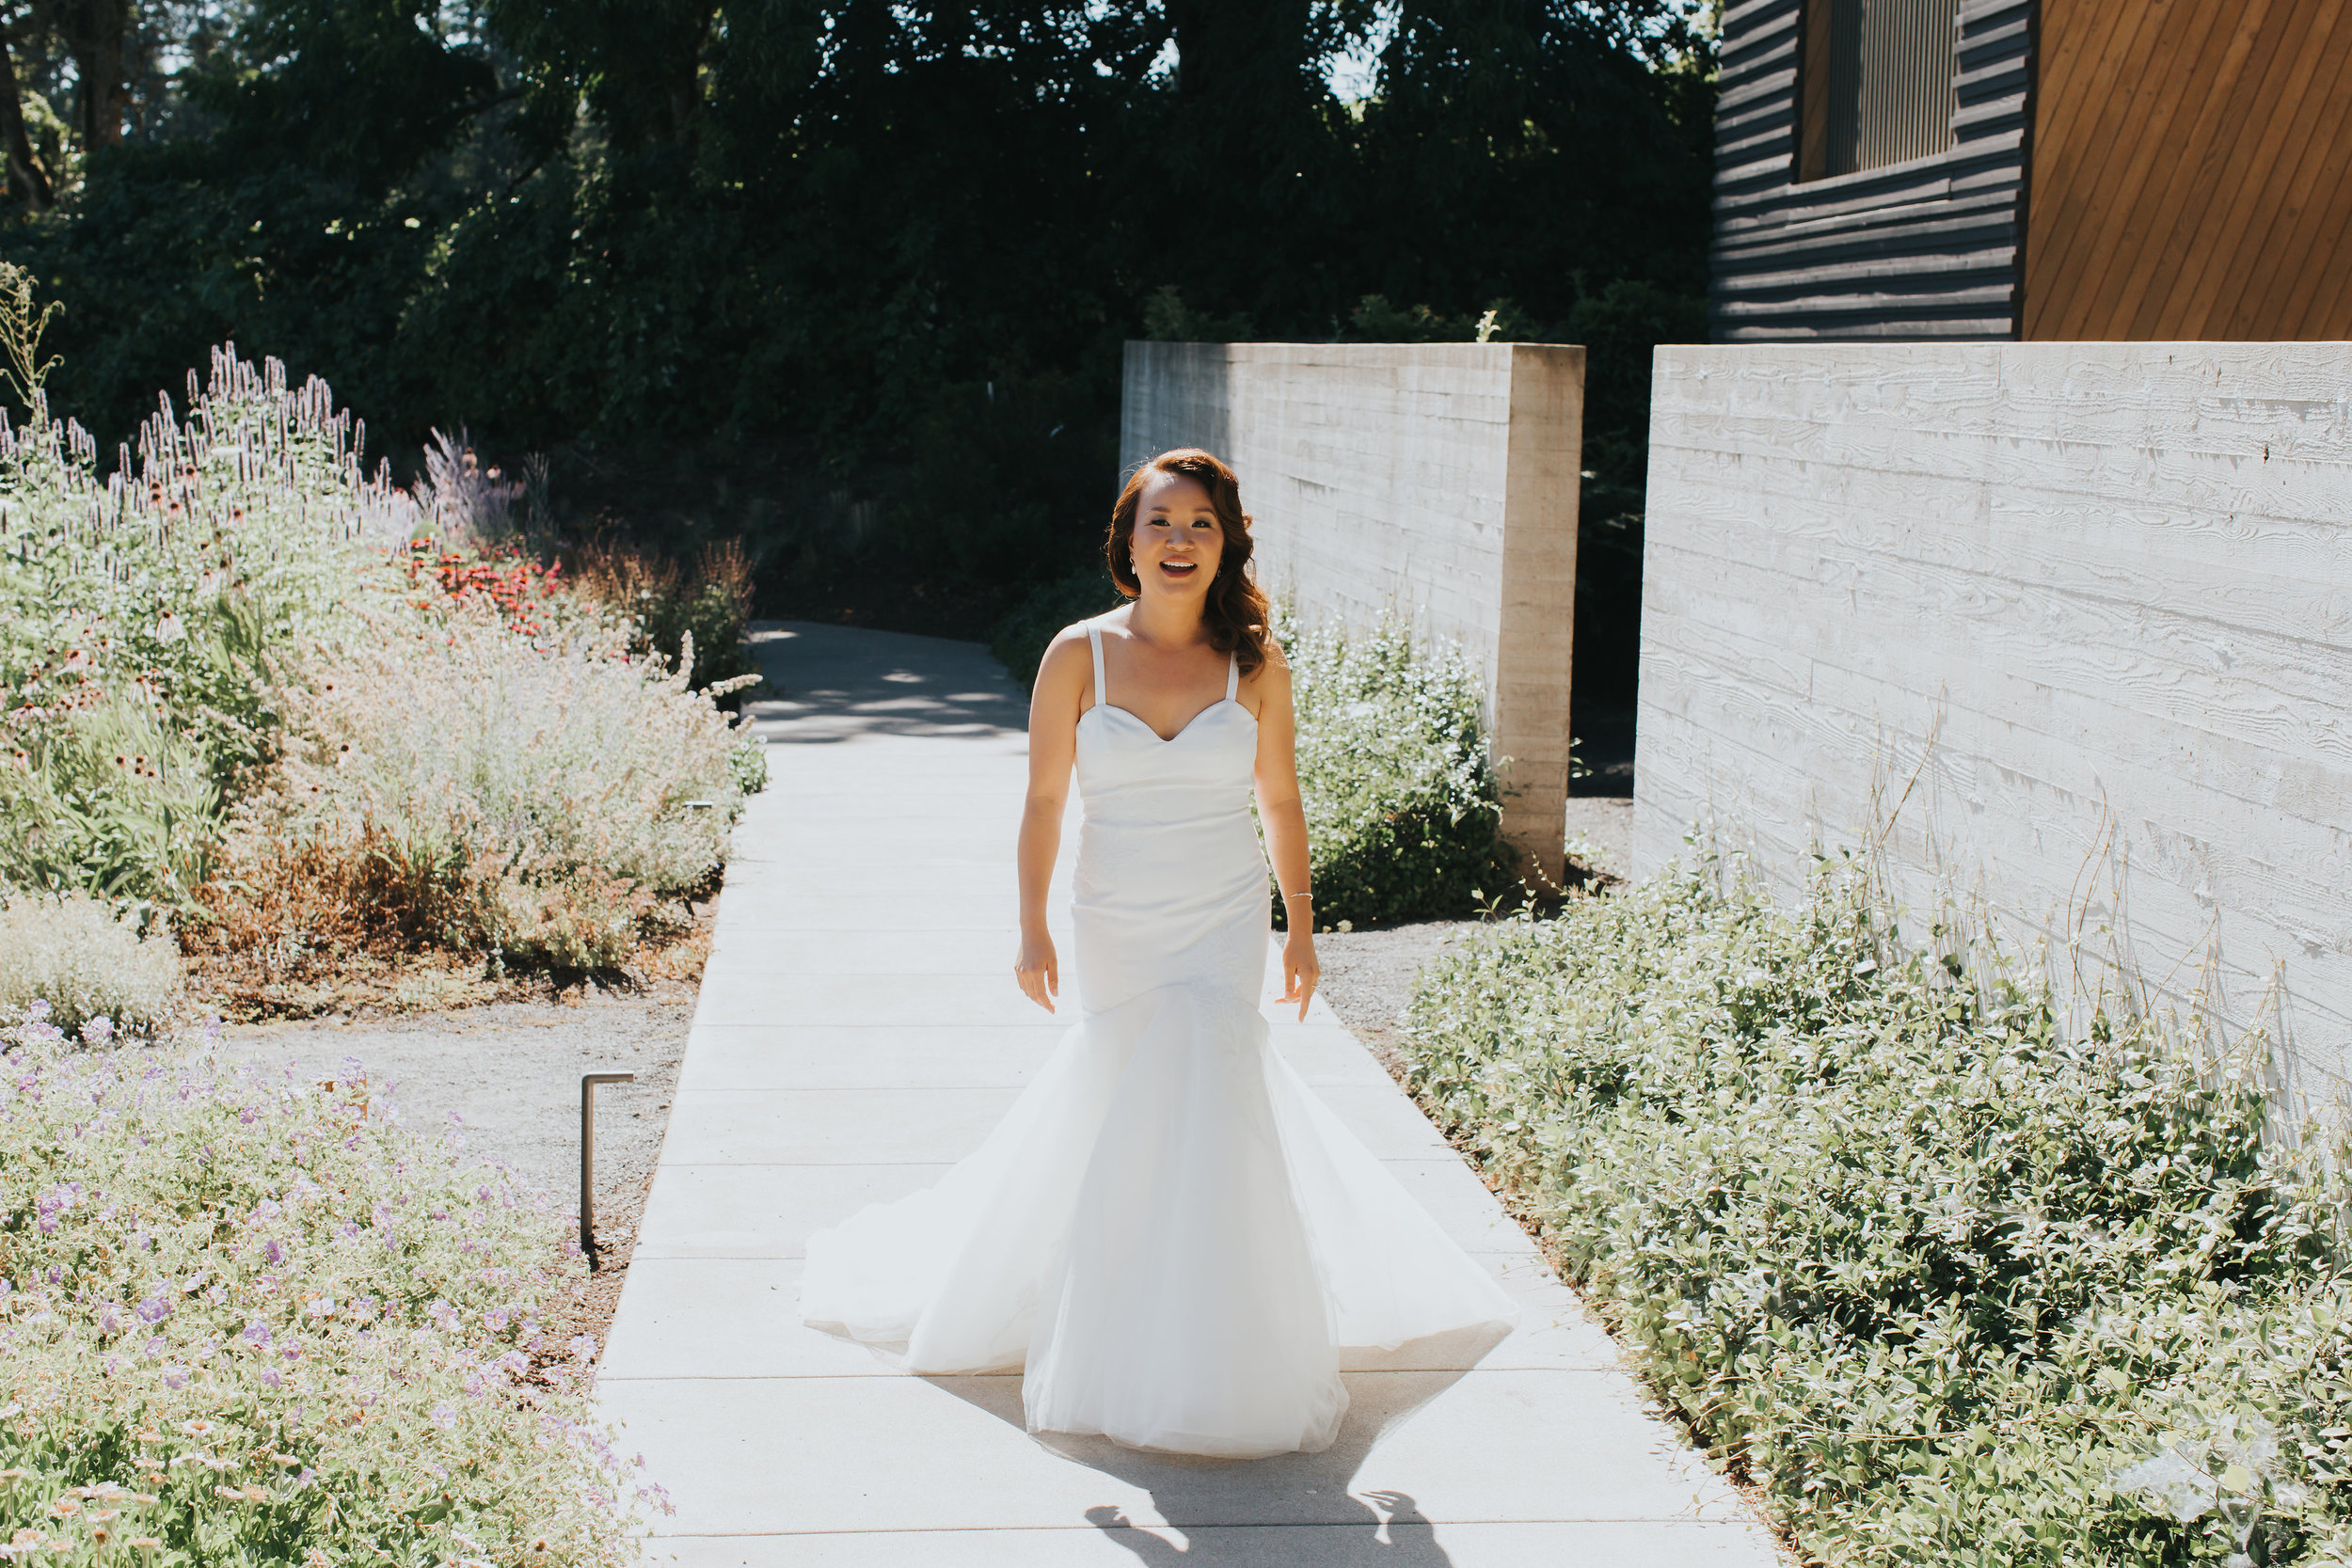 Bridalbliss.com | Portland Wedding | Oregon Event Planning and Design |  Andrea Zajonc Photography